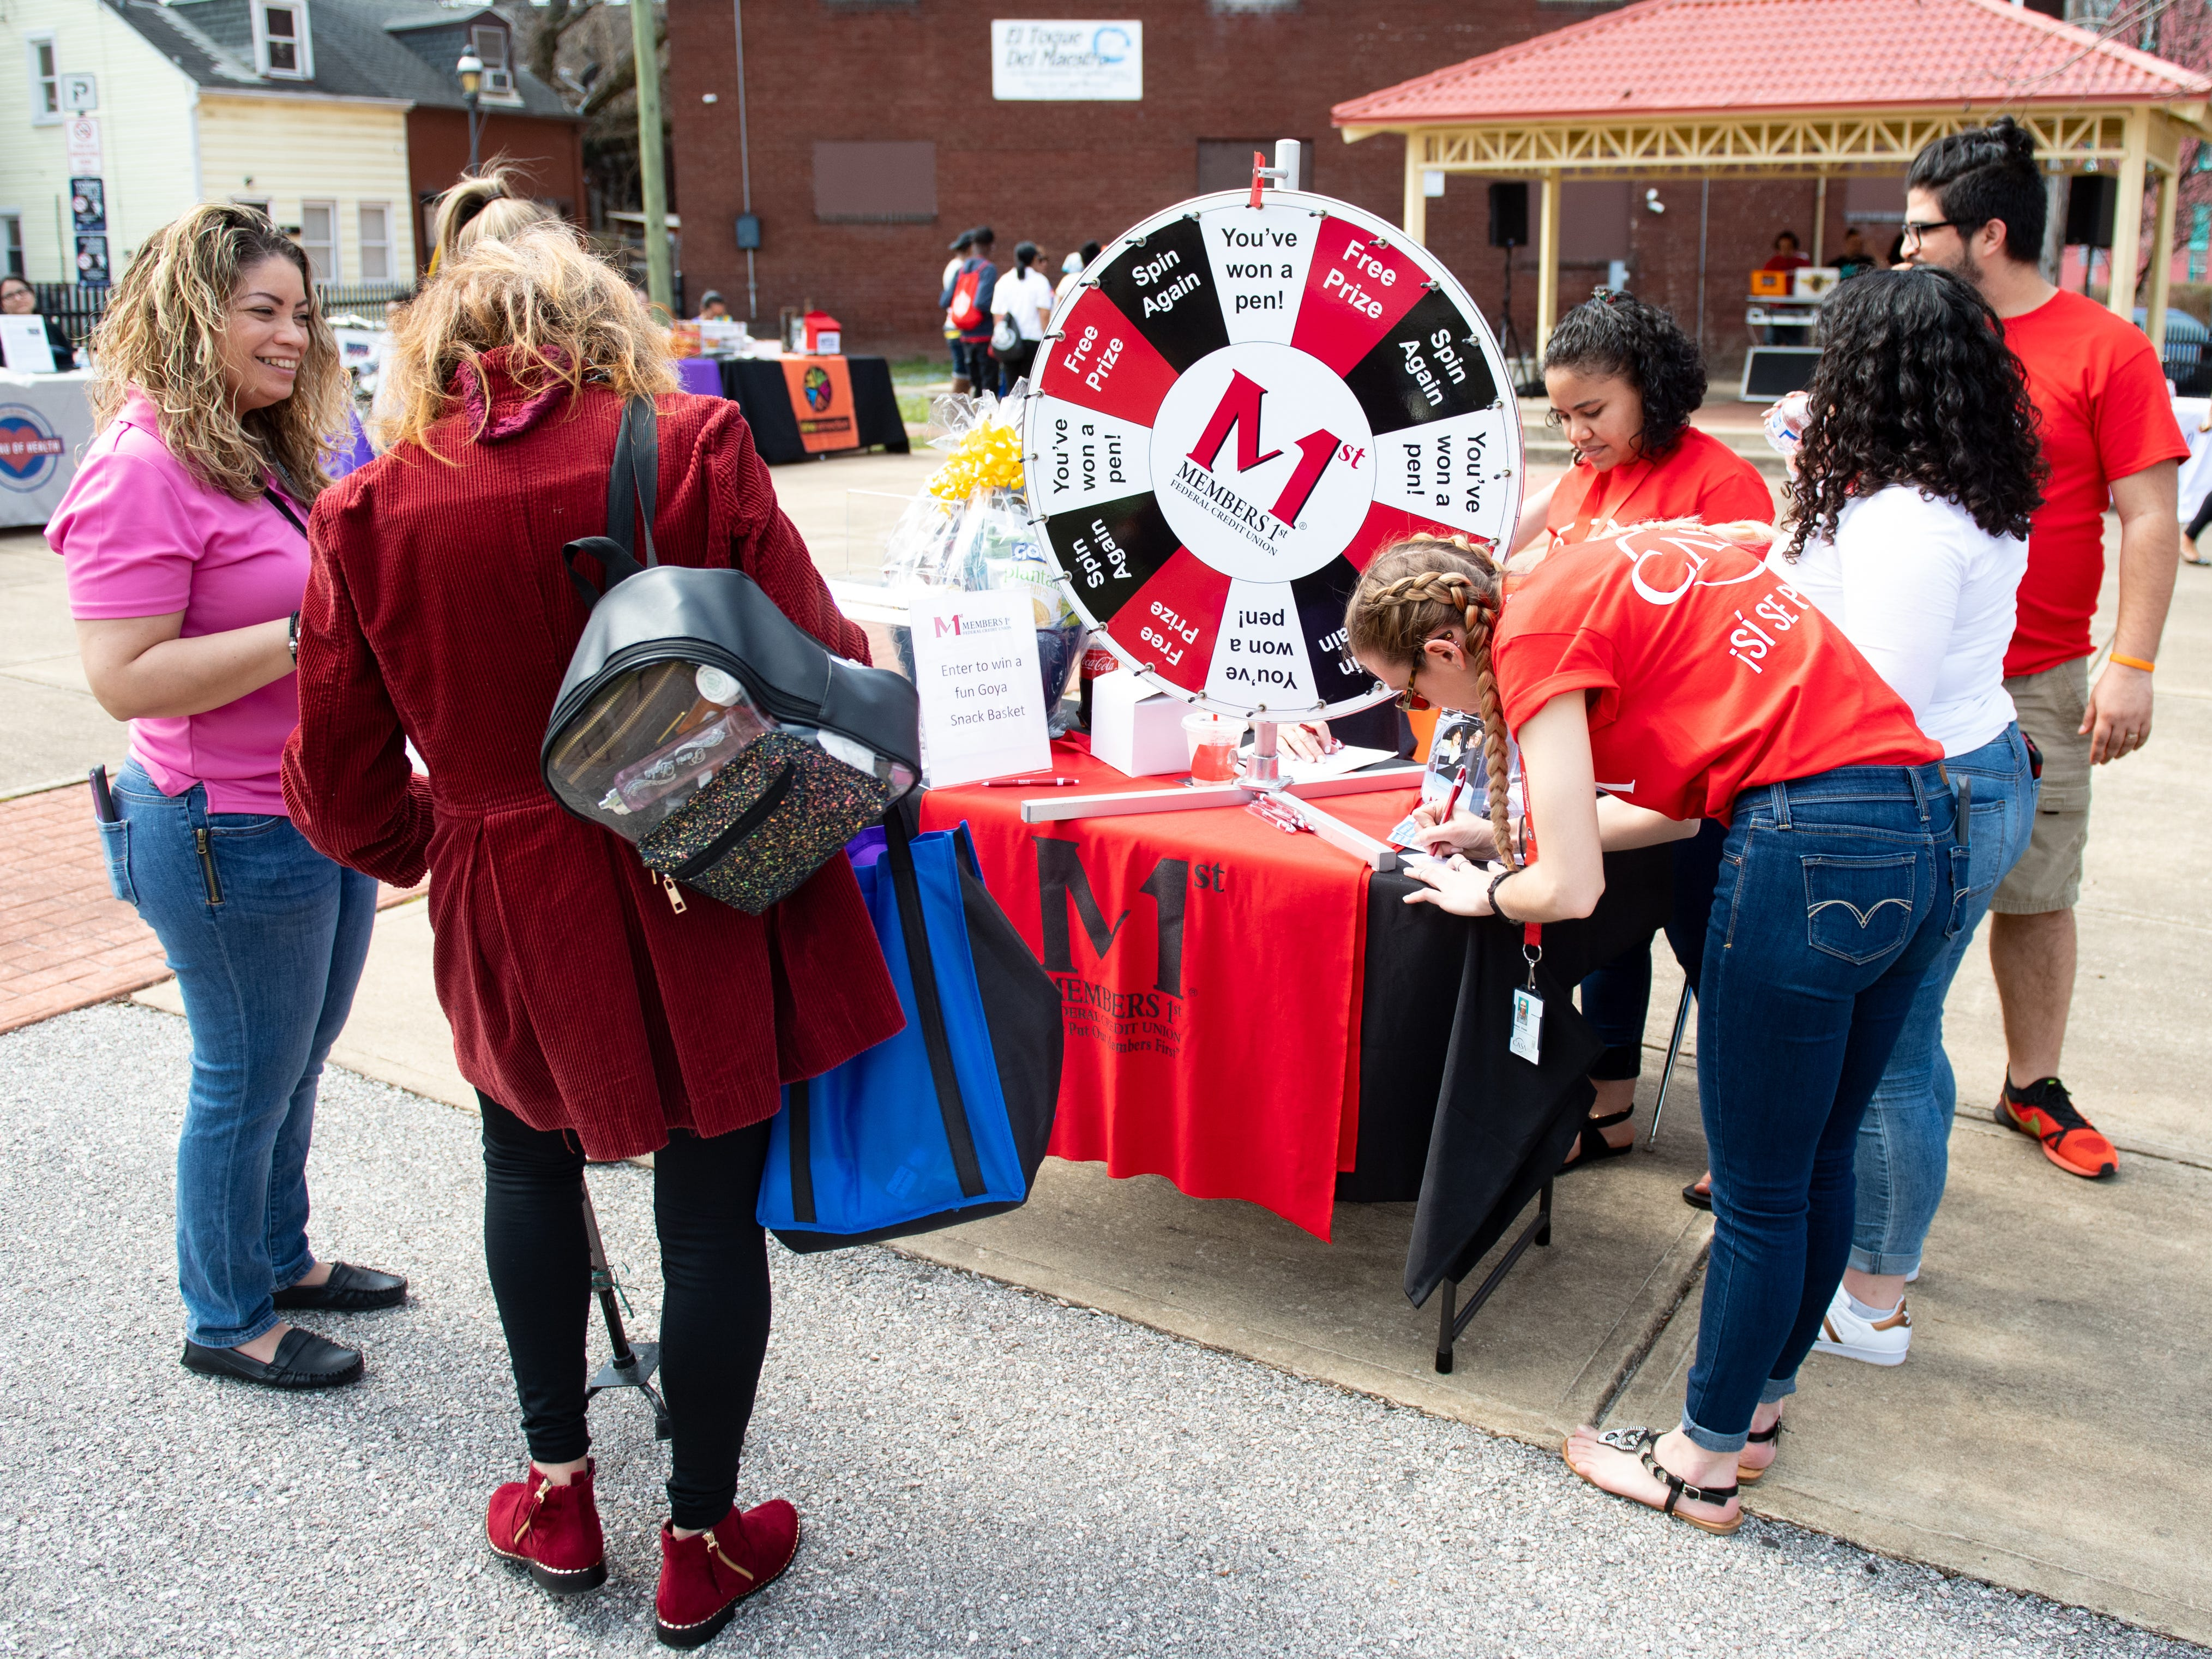 Visitors stop by the many booths at the Adelante Festival to gather health and fitness information, March 30, 2019.